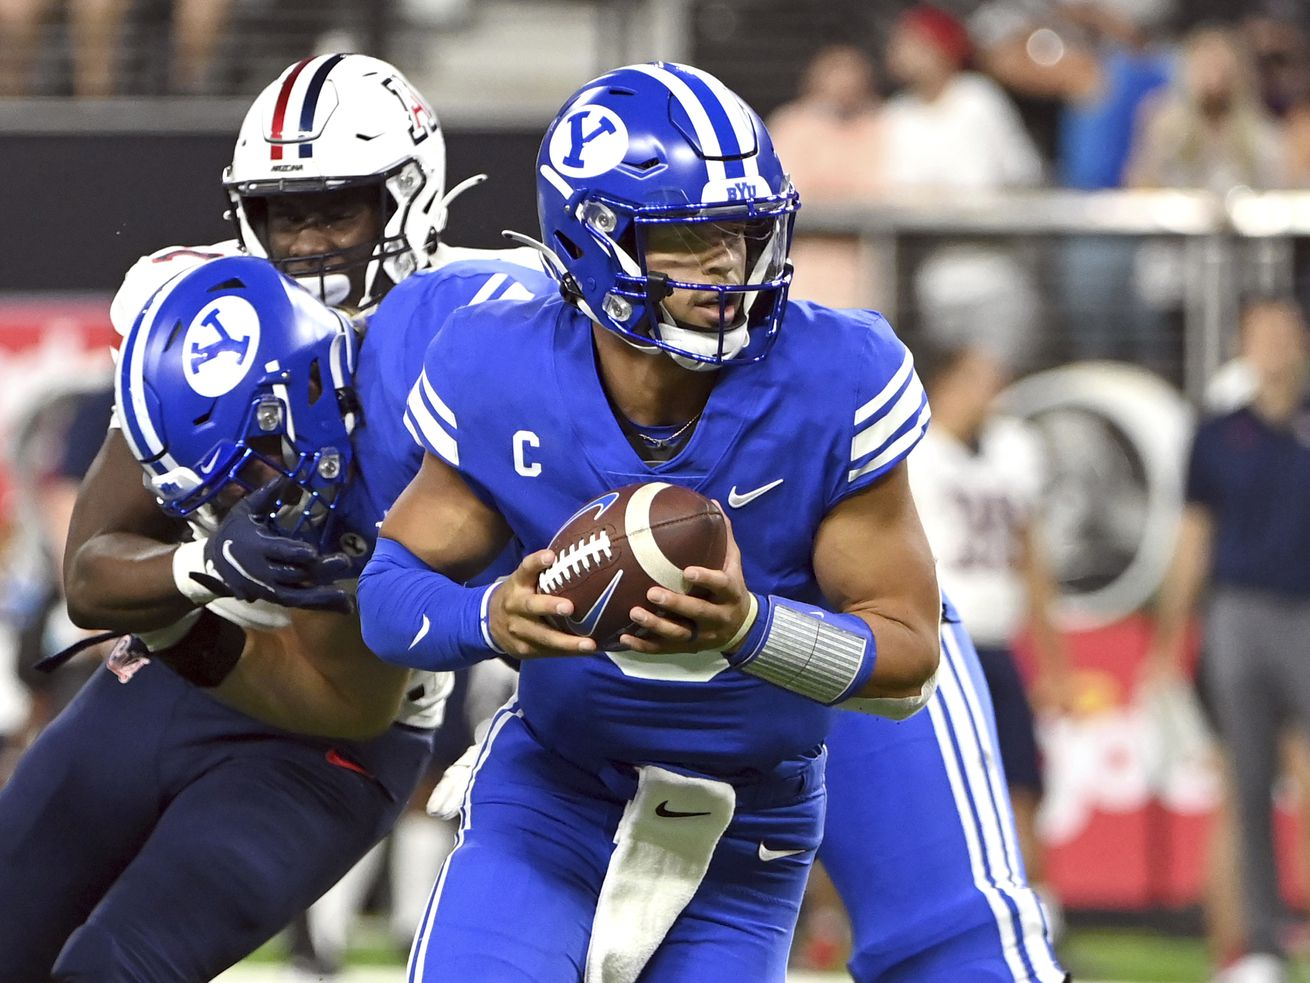 BYU is one of four schools invited to join the Big 12.